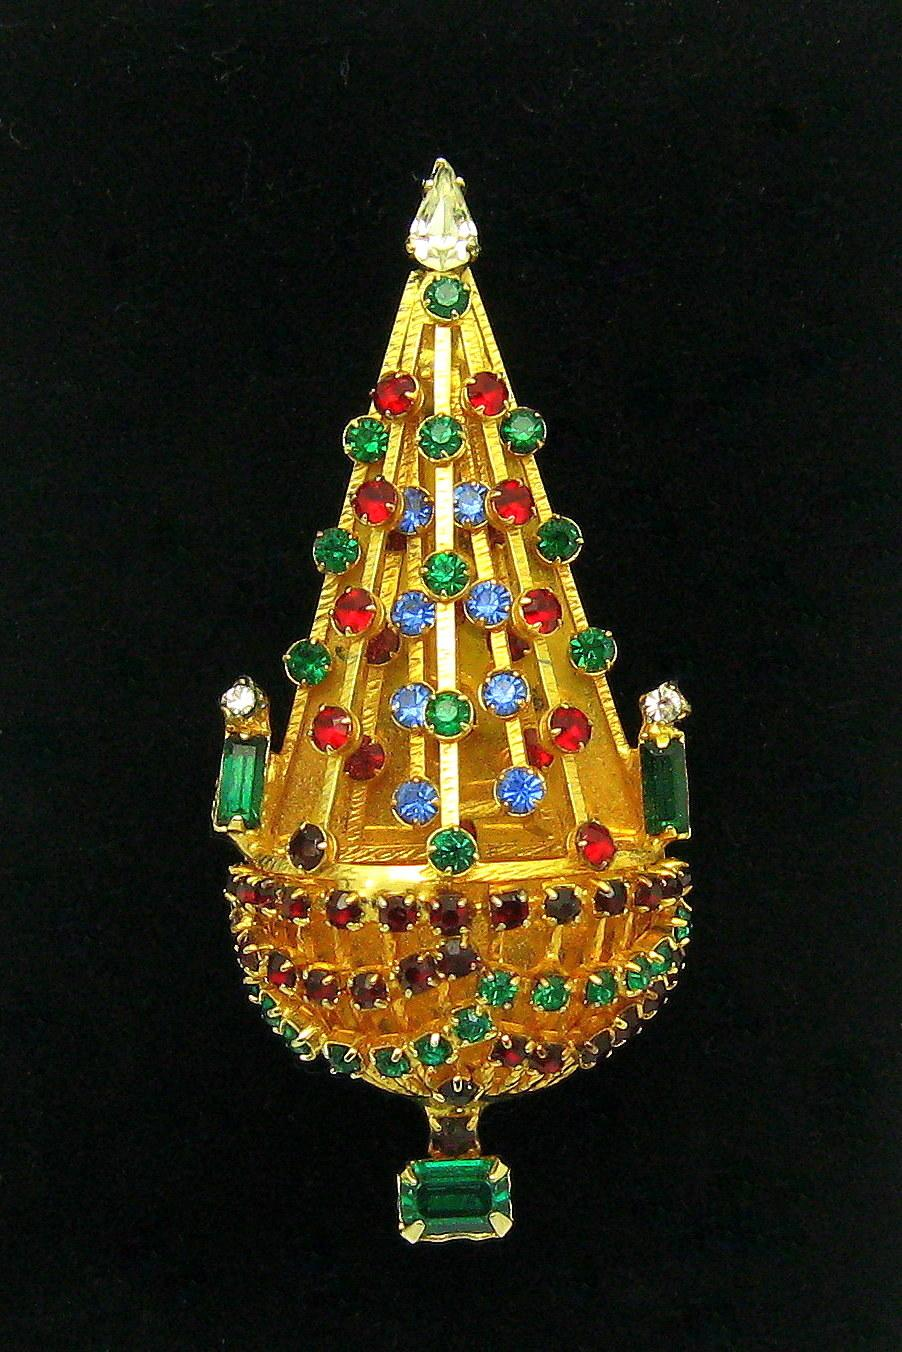 Vintage joseph warner chandelier dimensional christmas tree roll over large image to magnify click large image to zoom arubaitofo Gallery